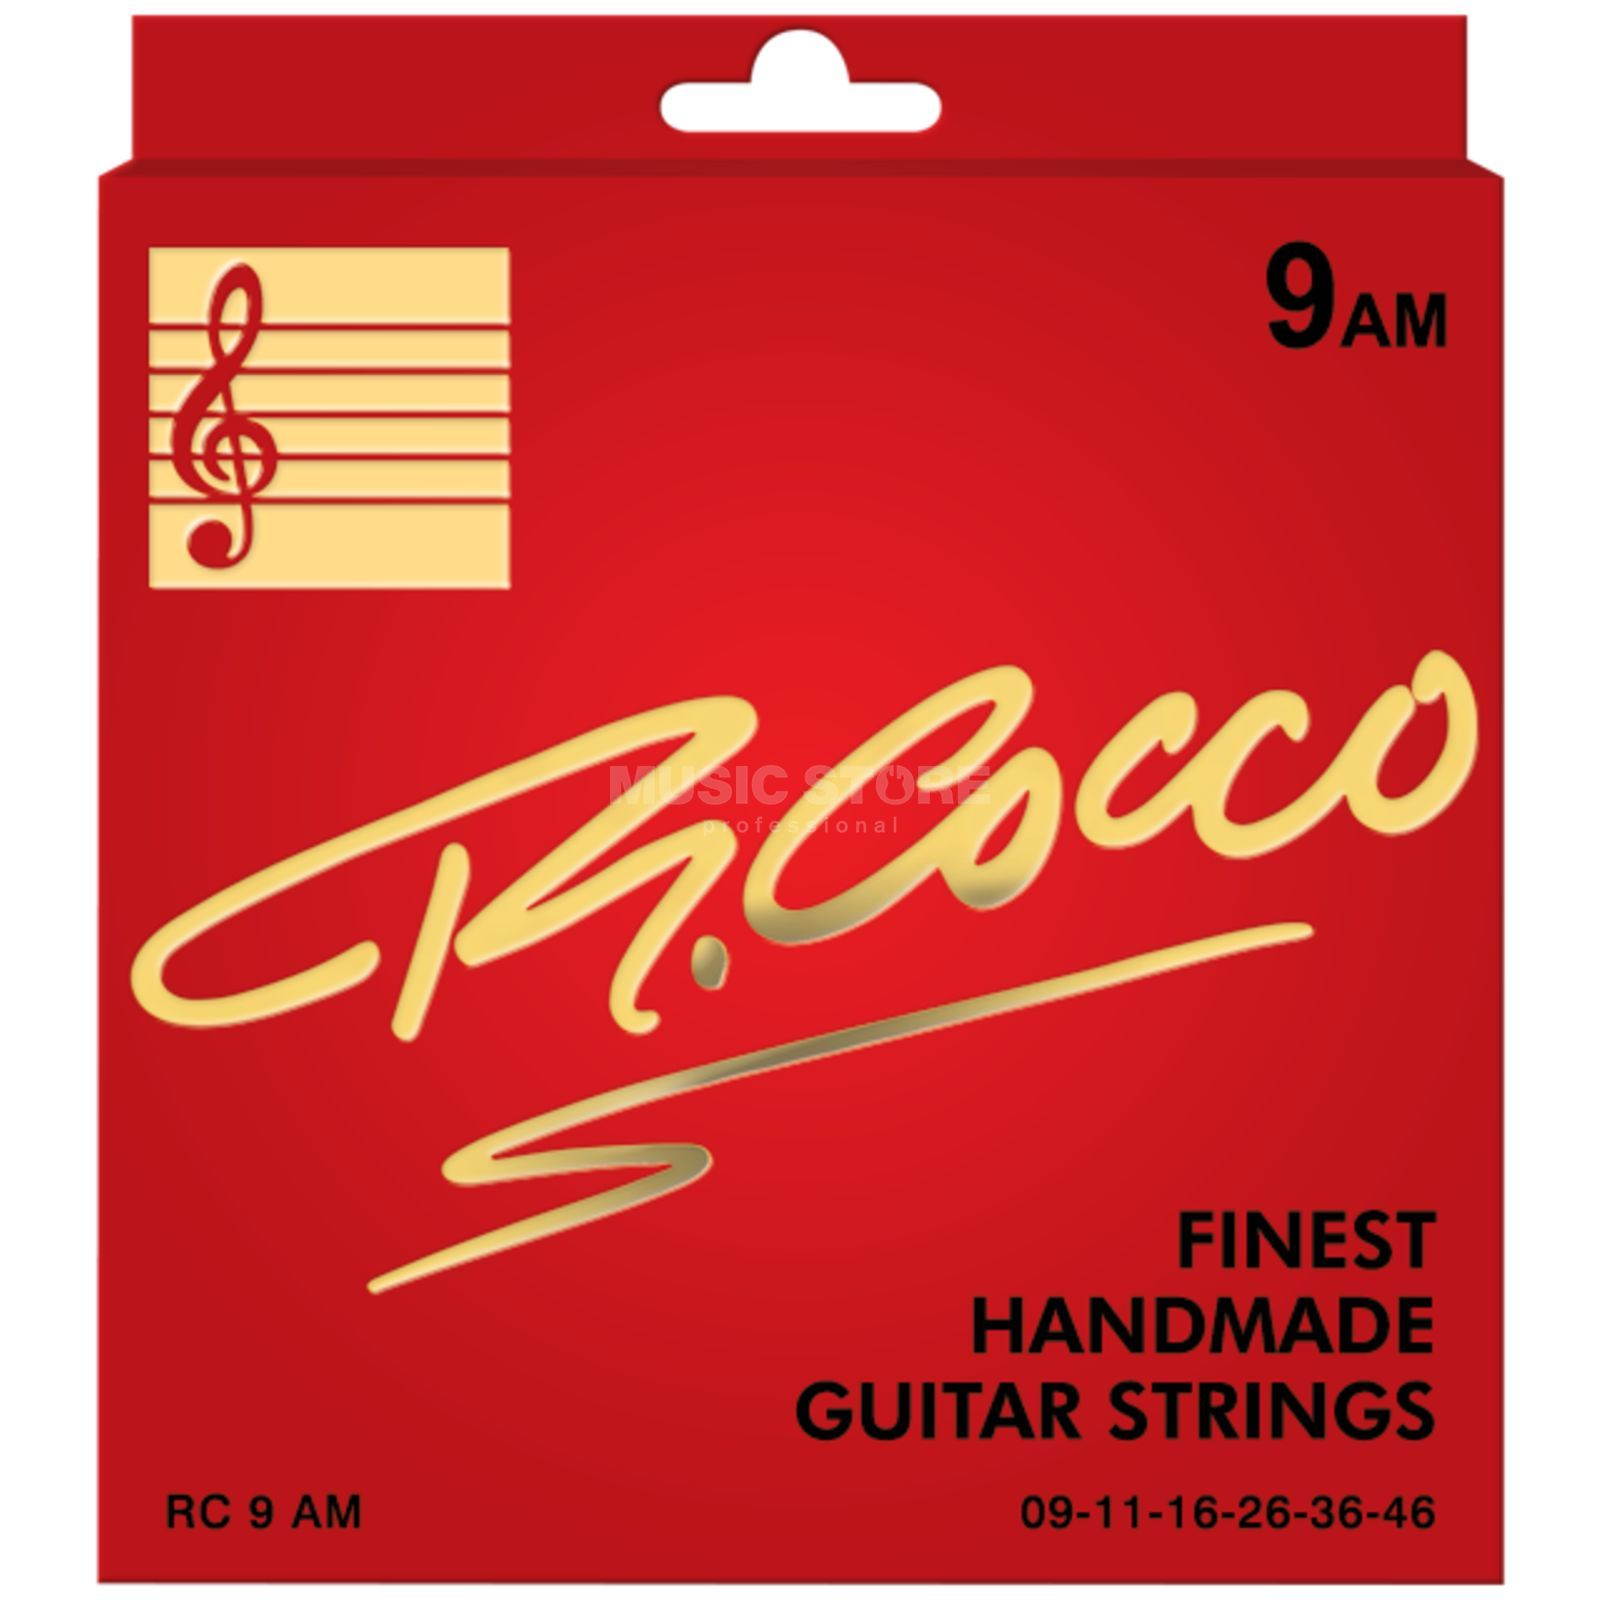 Cocco RC9AM E-Guitar Strings 09-46 Nickel Wound Produktbillede